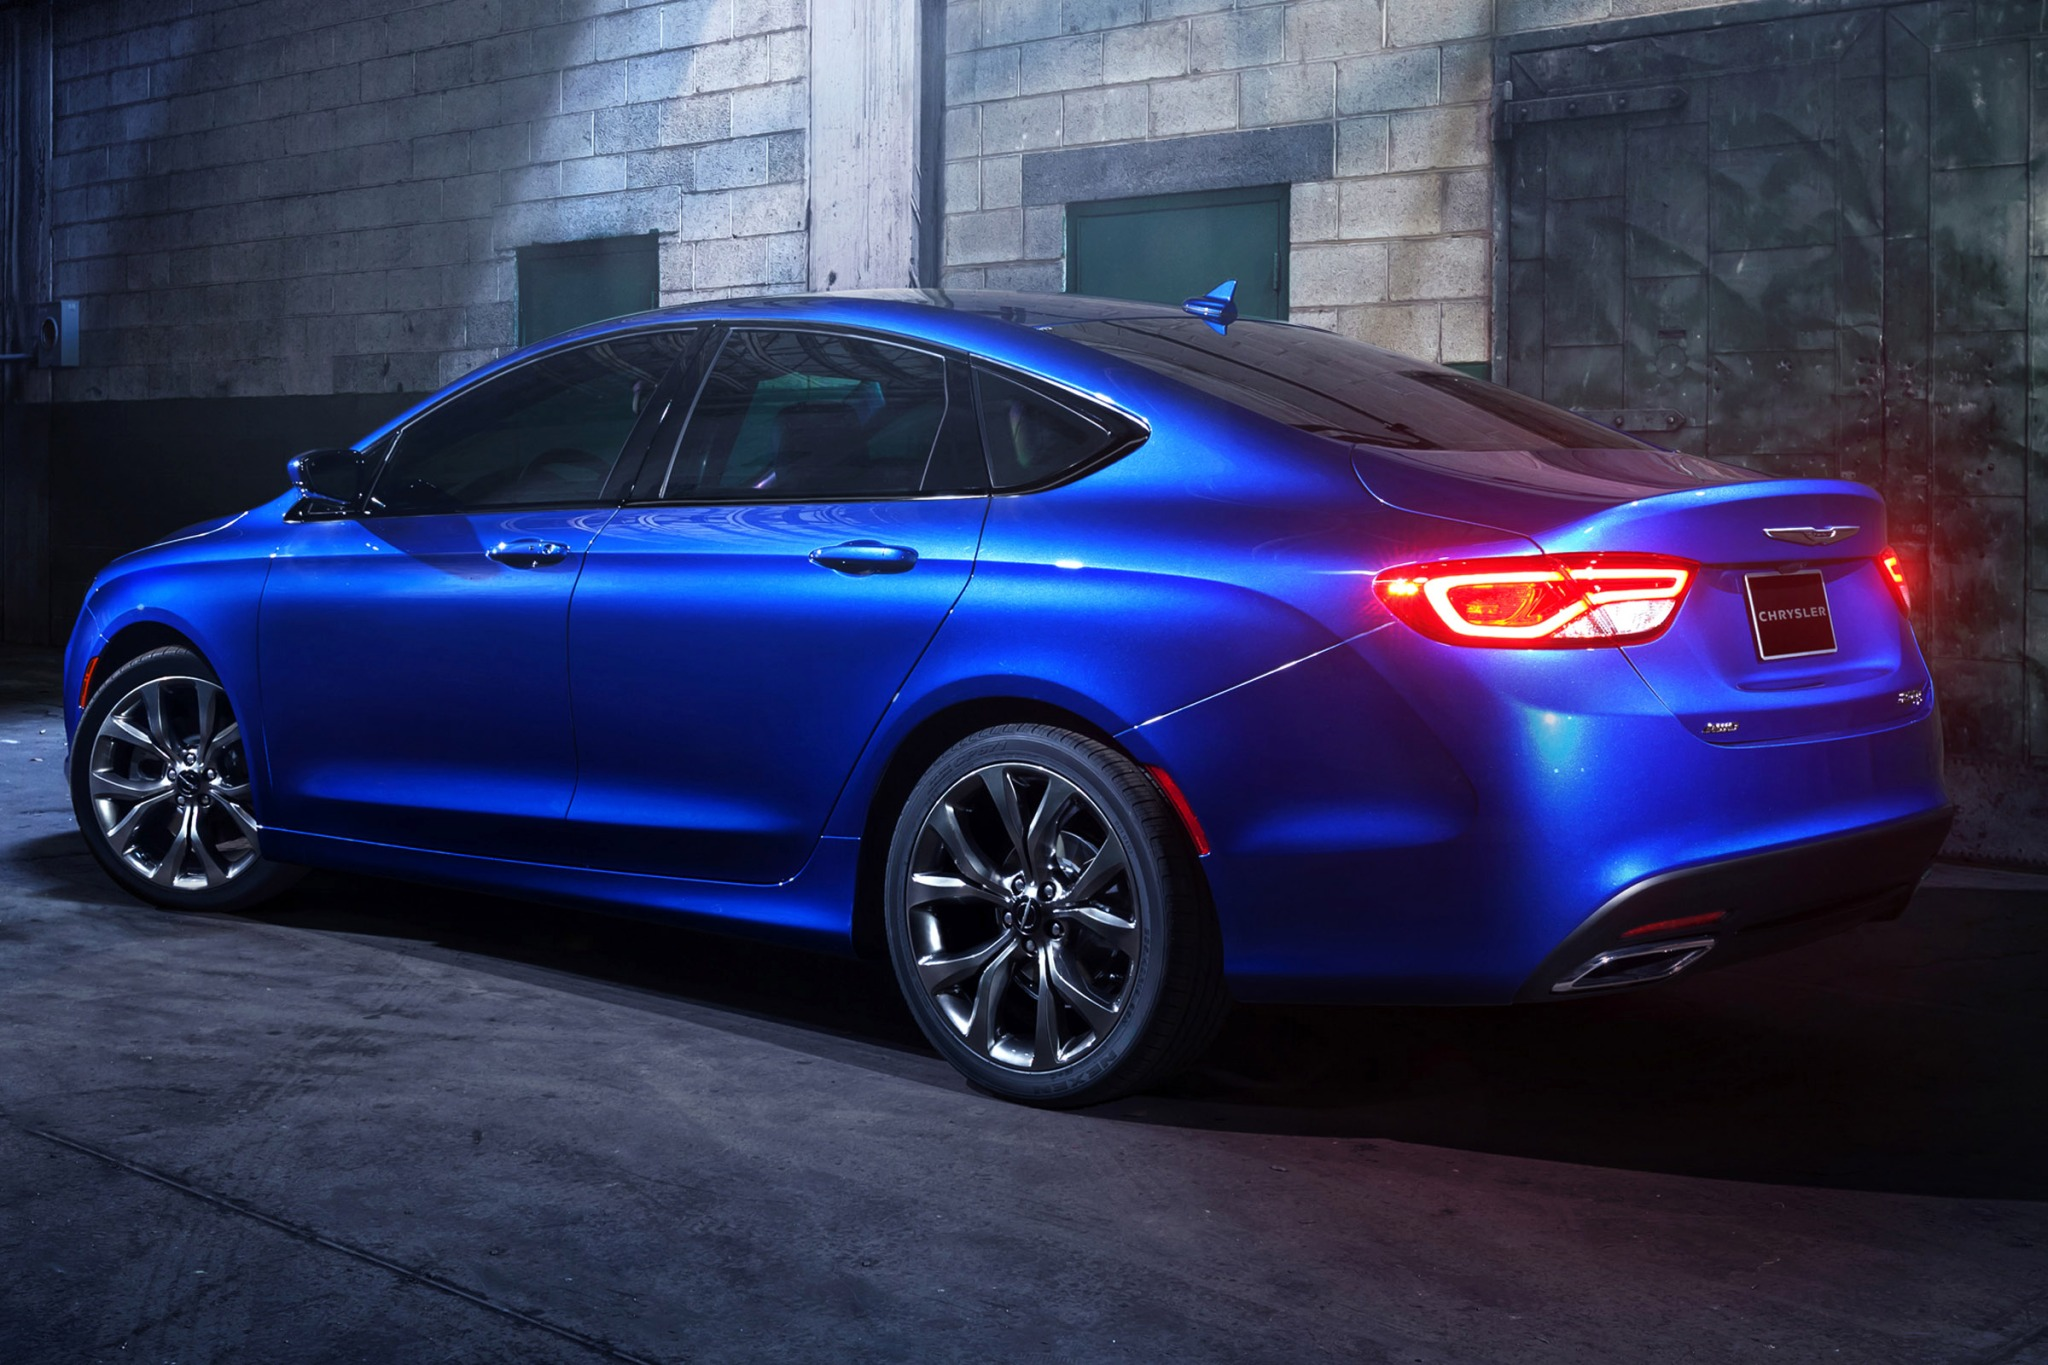 2015 Chrysler 200 C Sedan exterior #7